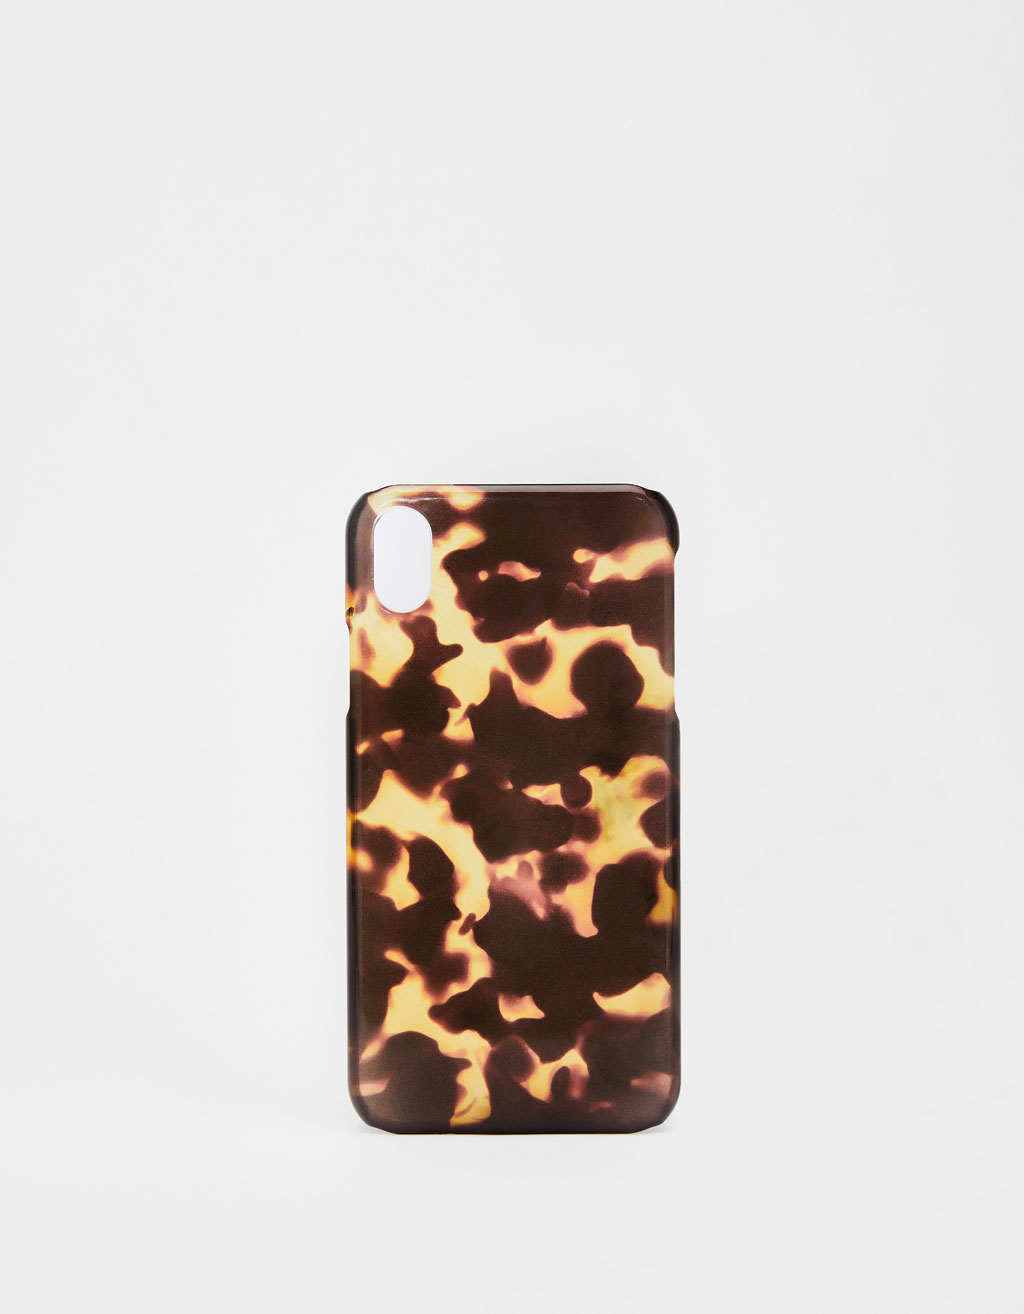 Carcasa efecto carey iPhone XR